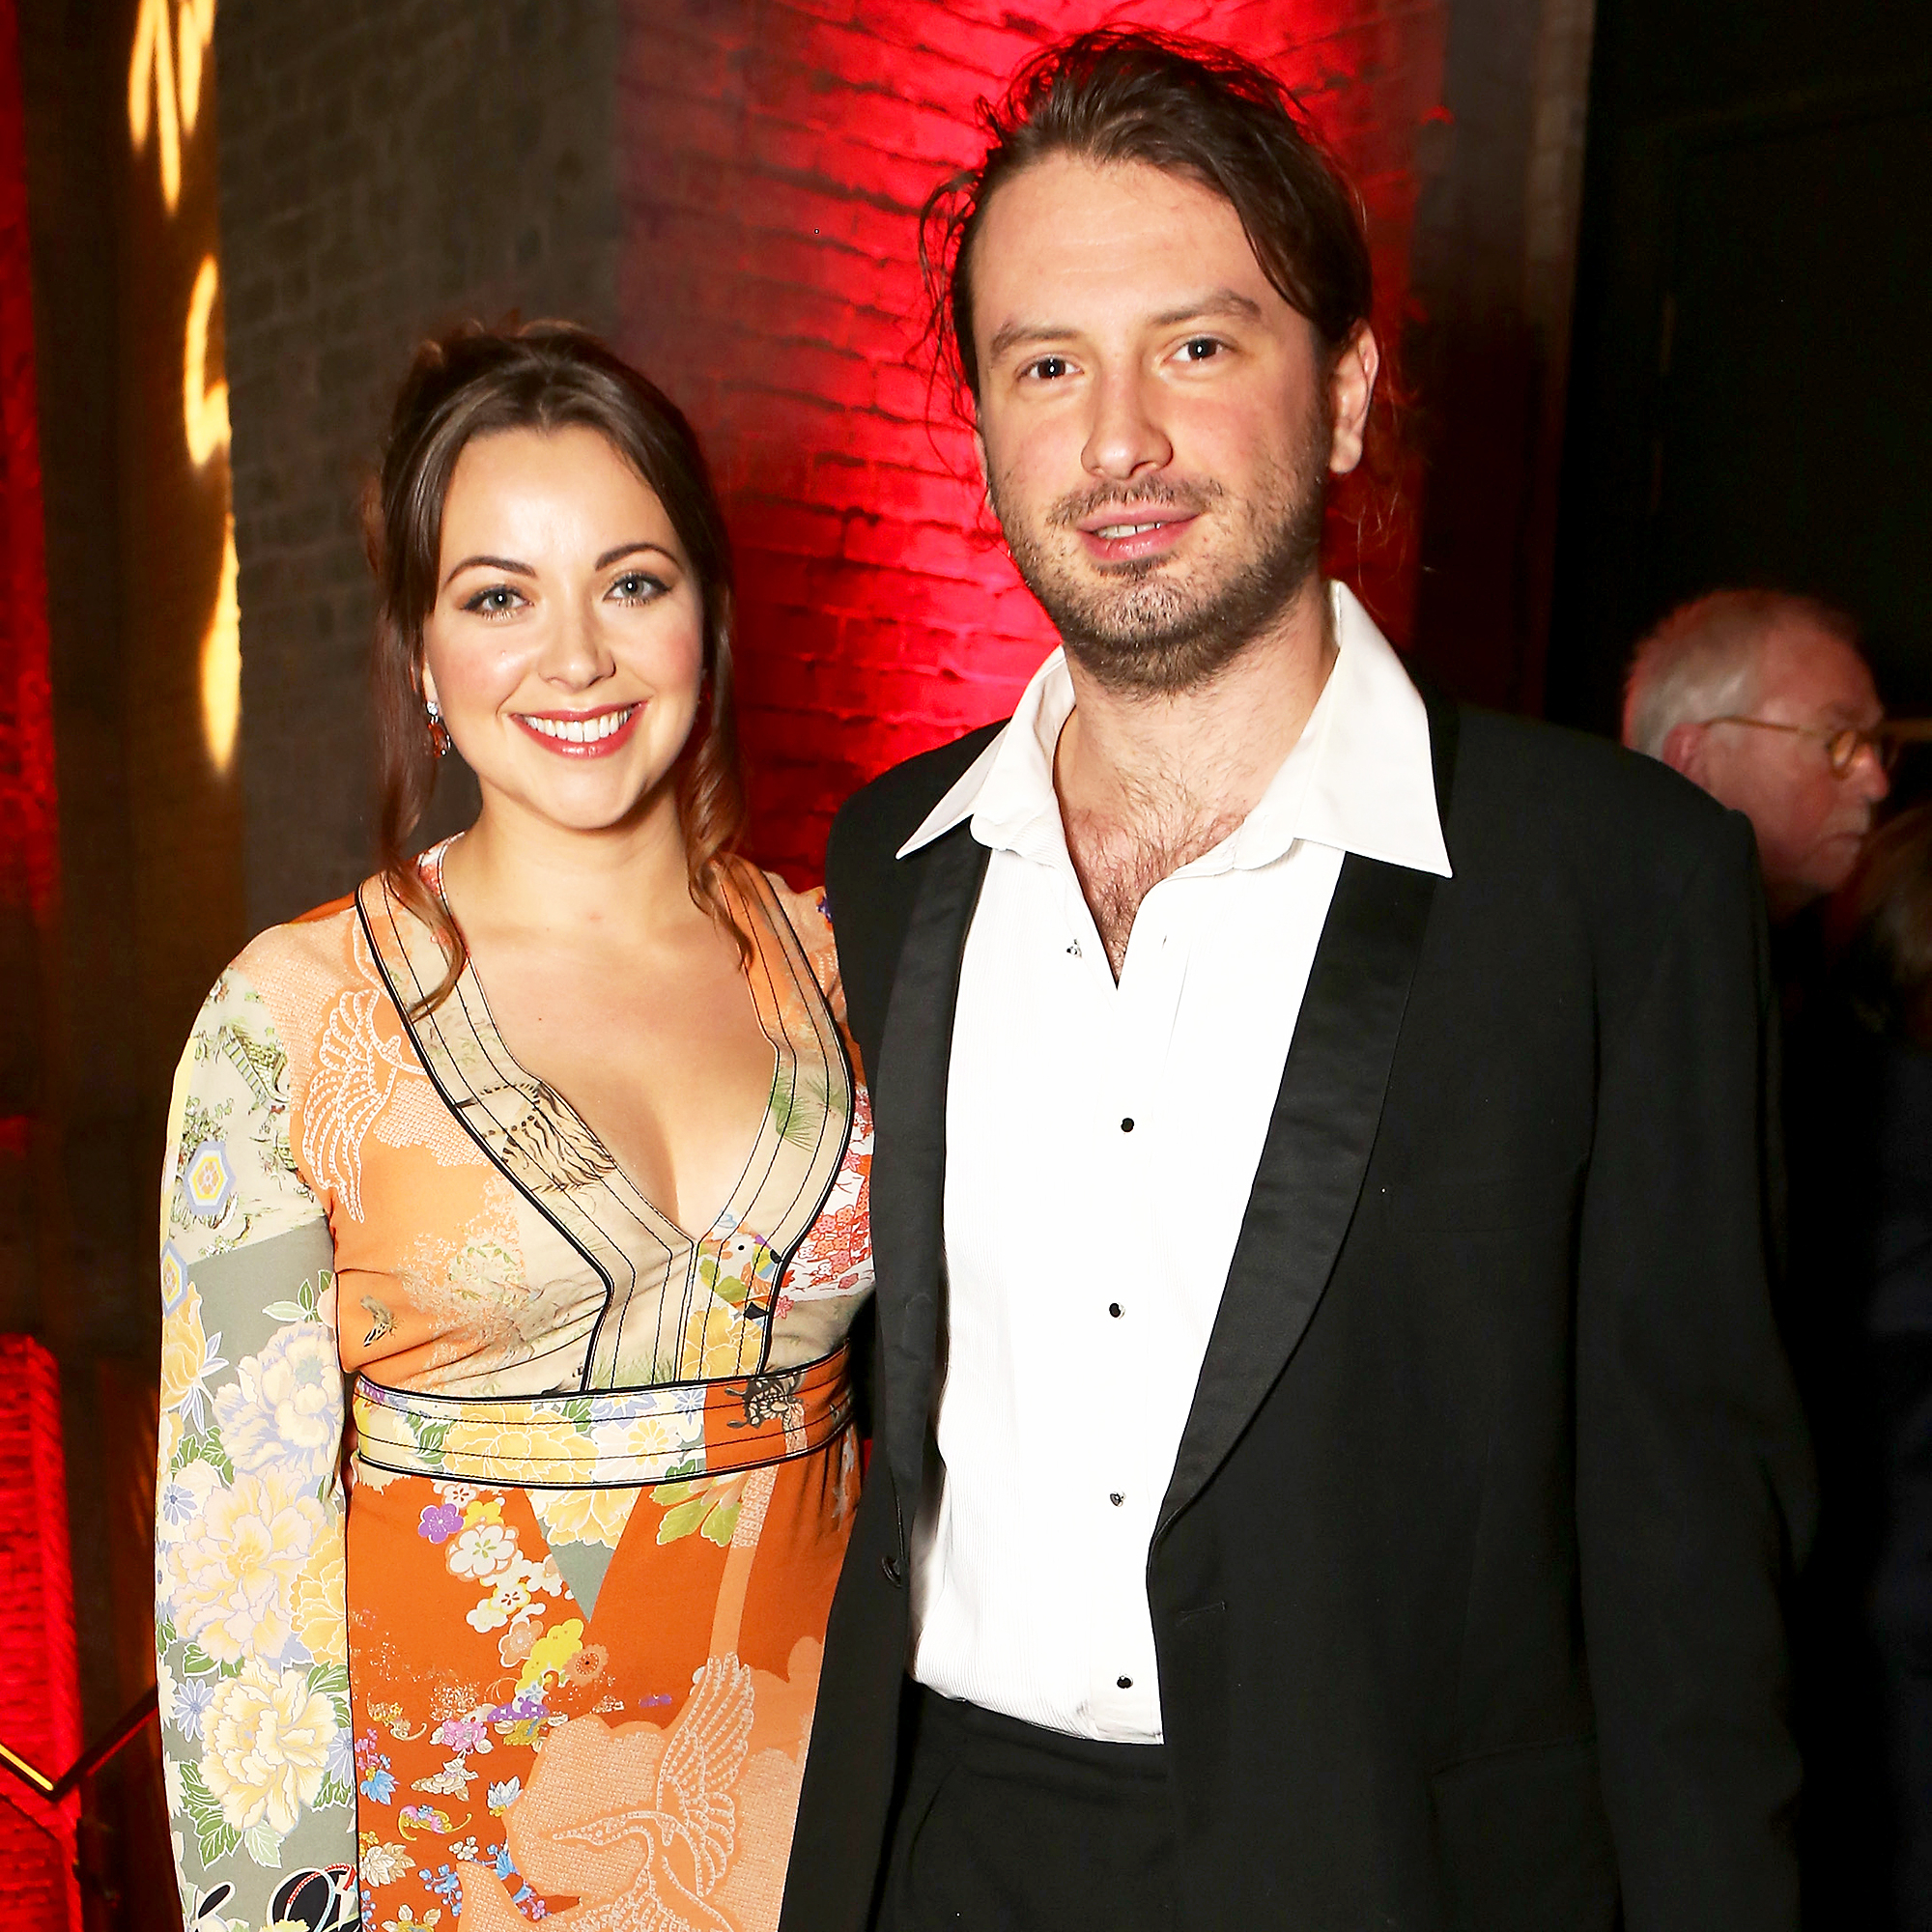 Charlotte Church and Johnny Powell